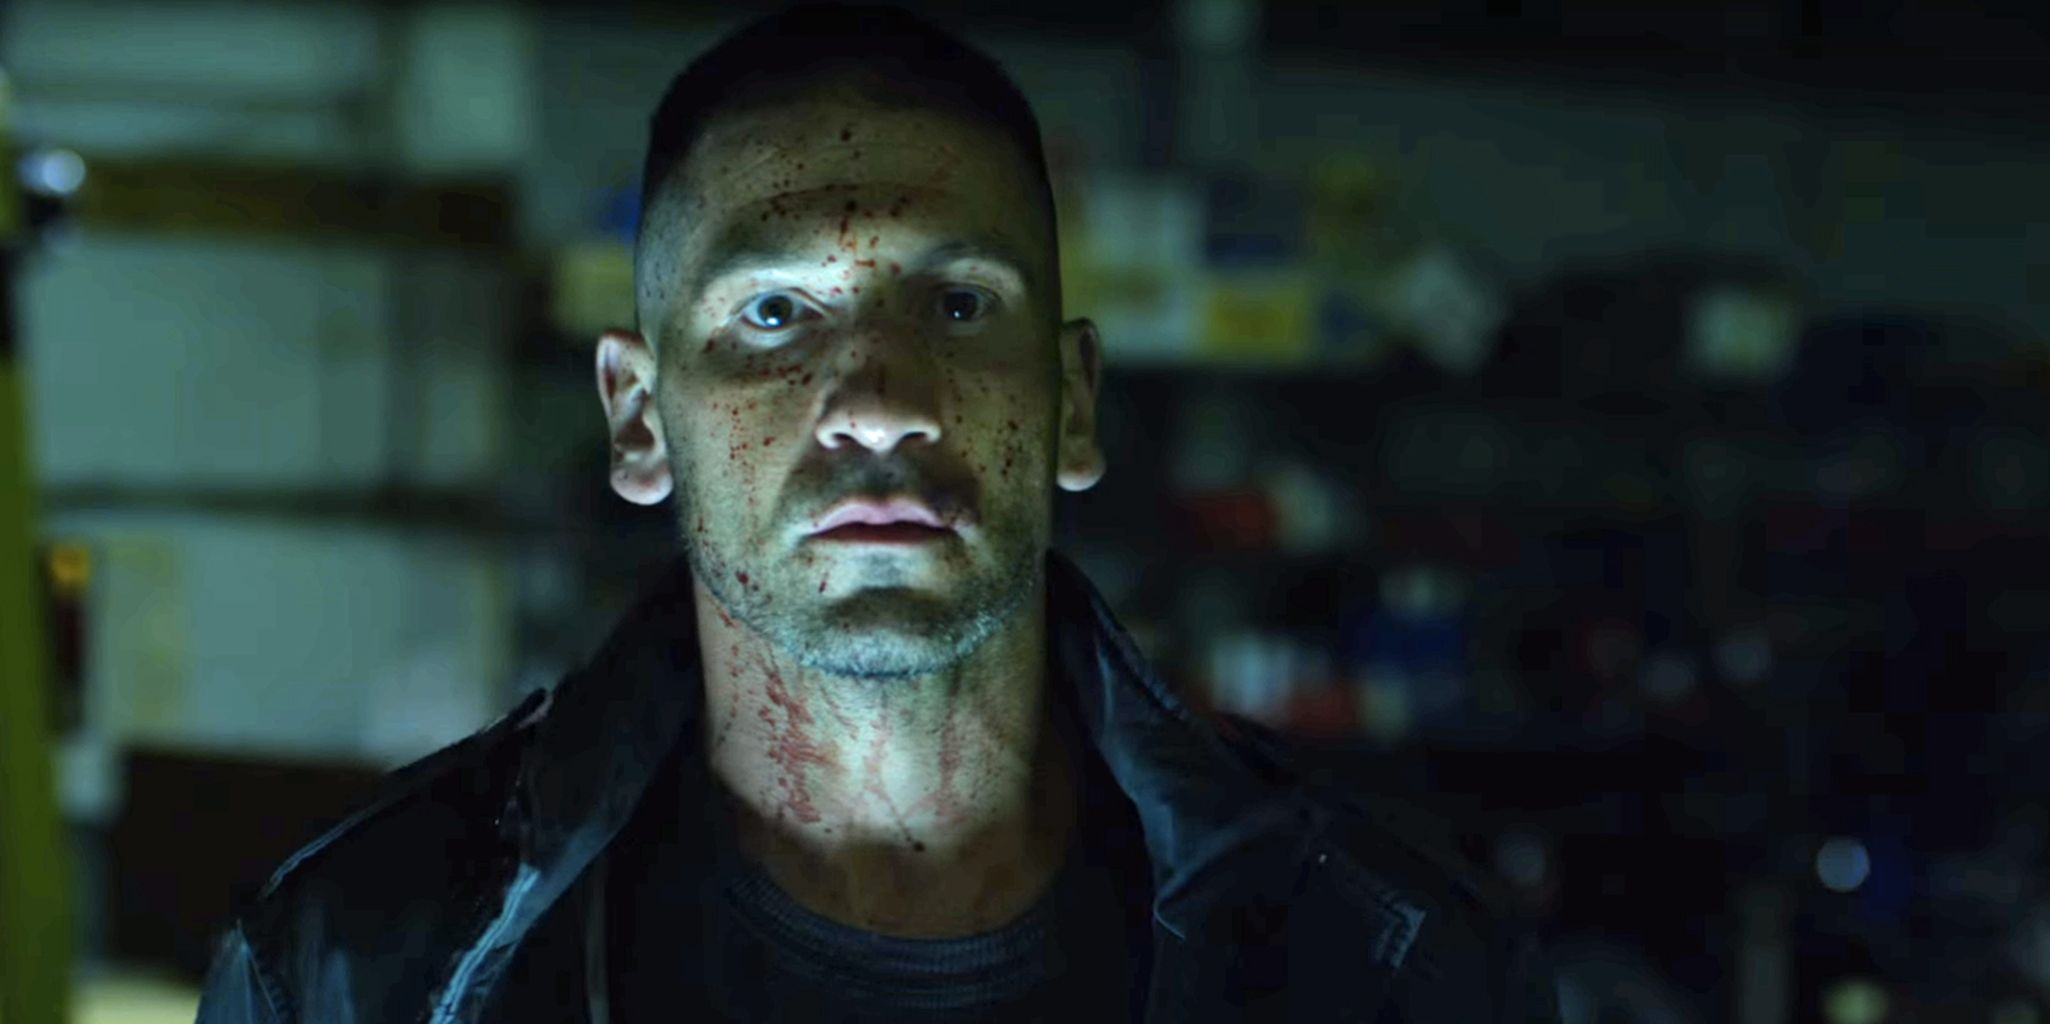 Back to work: Checa el teaser tráiler de la nueva temporada de The Punisher